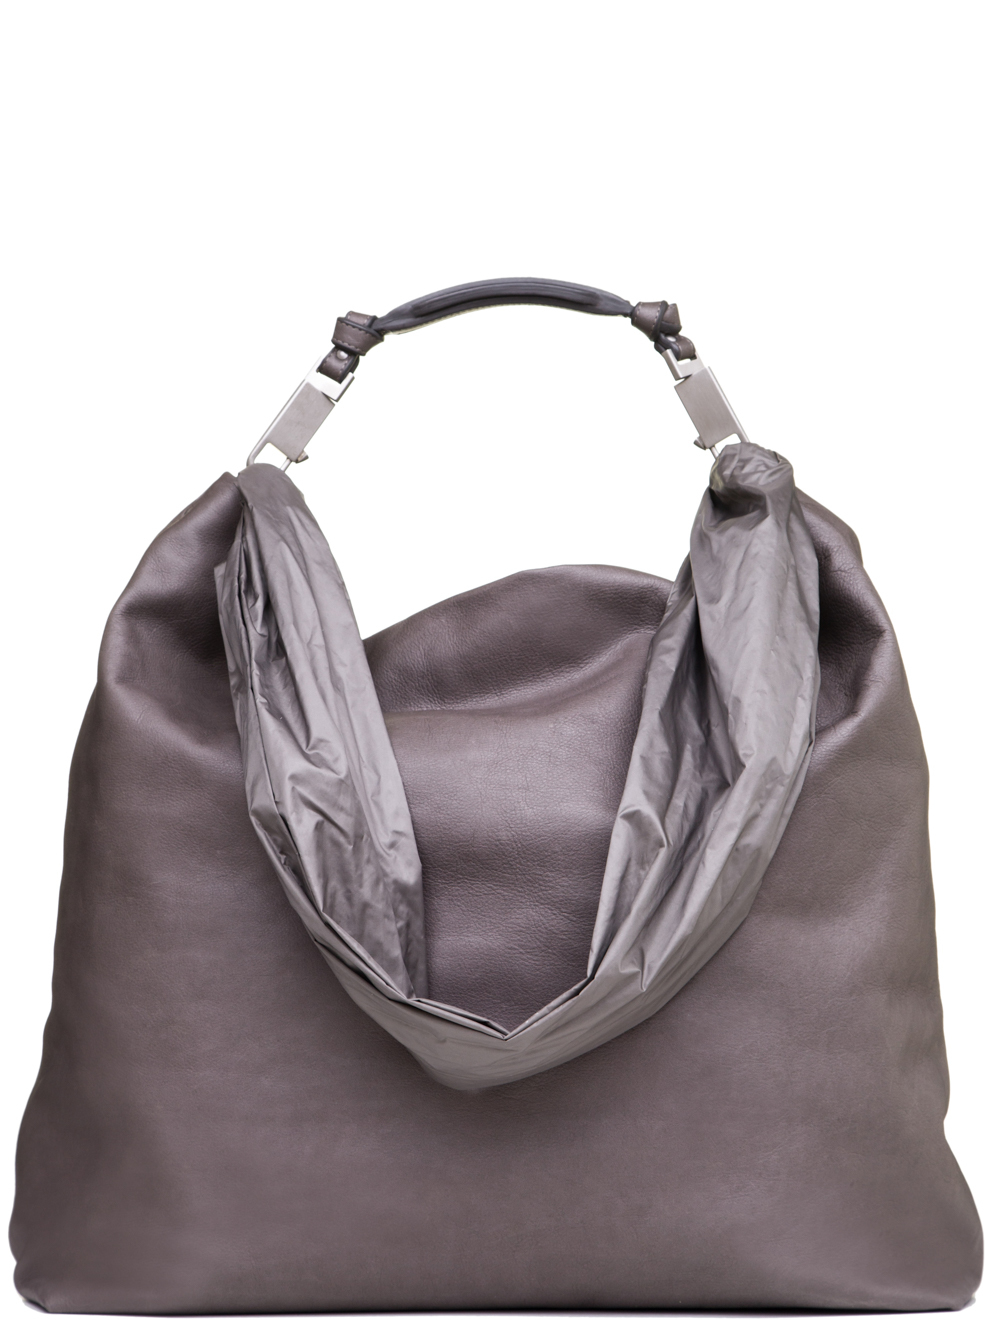 RICK OWENS SS19 BABEL MEDIUM BALOON BAG IN DUST GREY CALF LEATHER